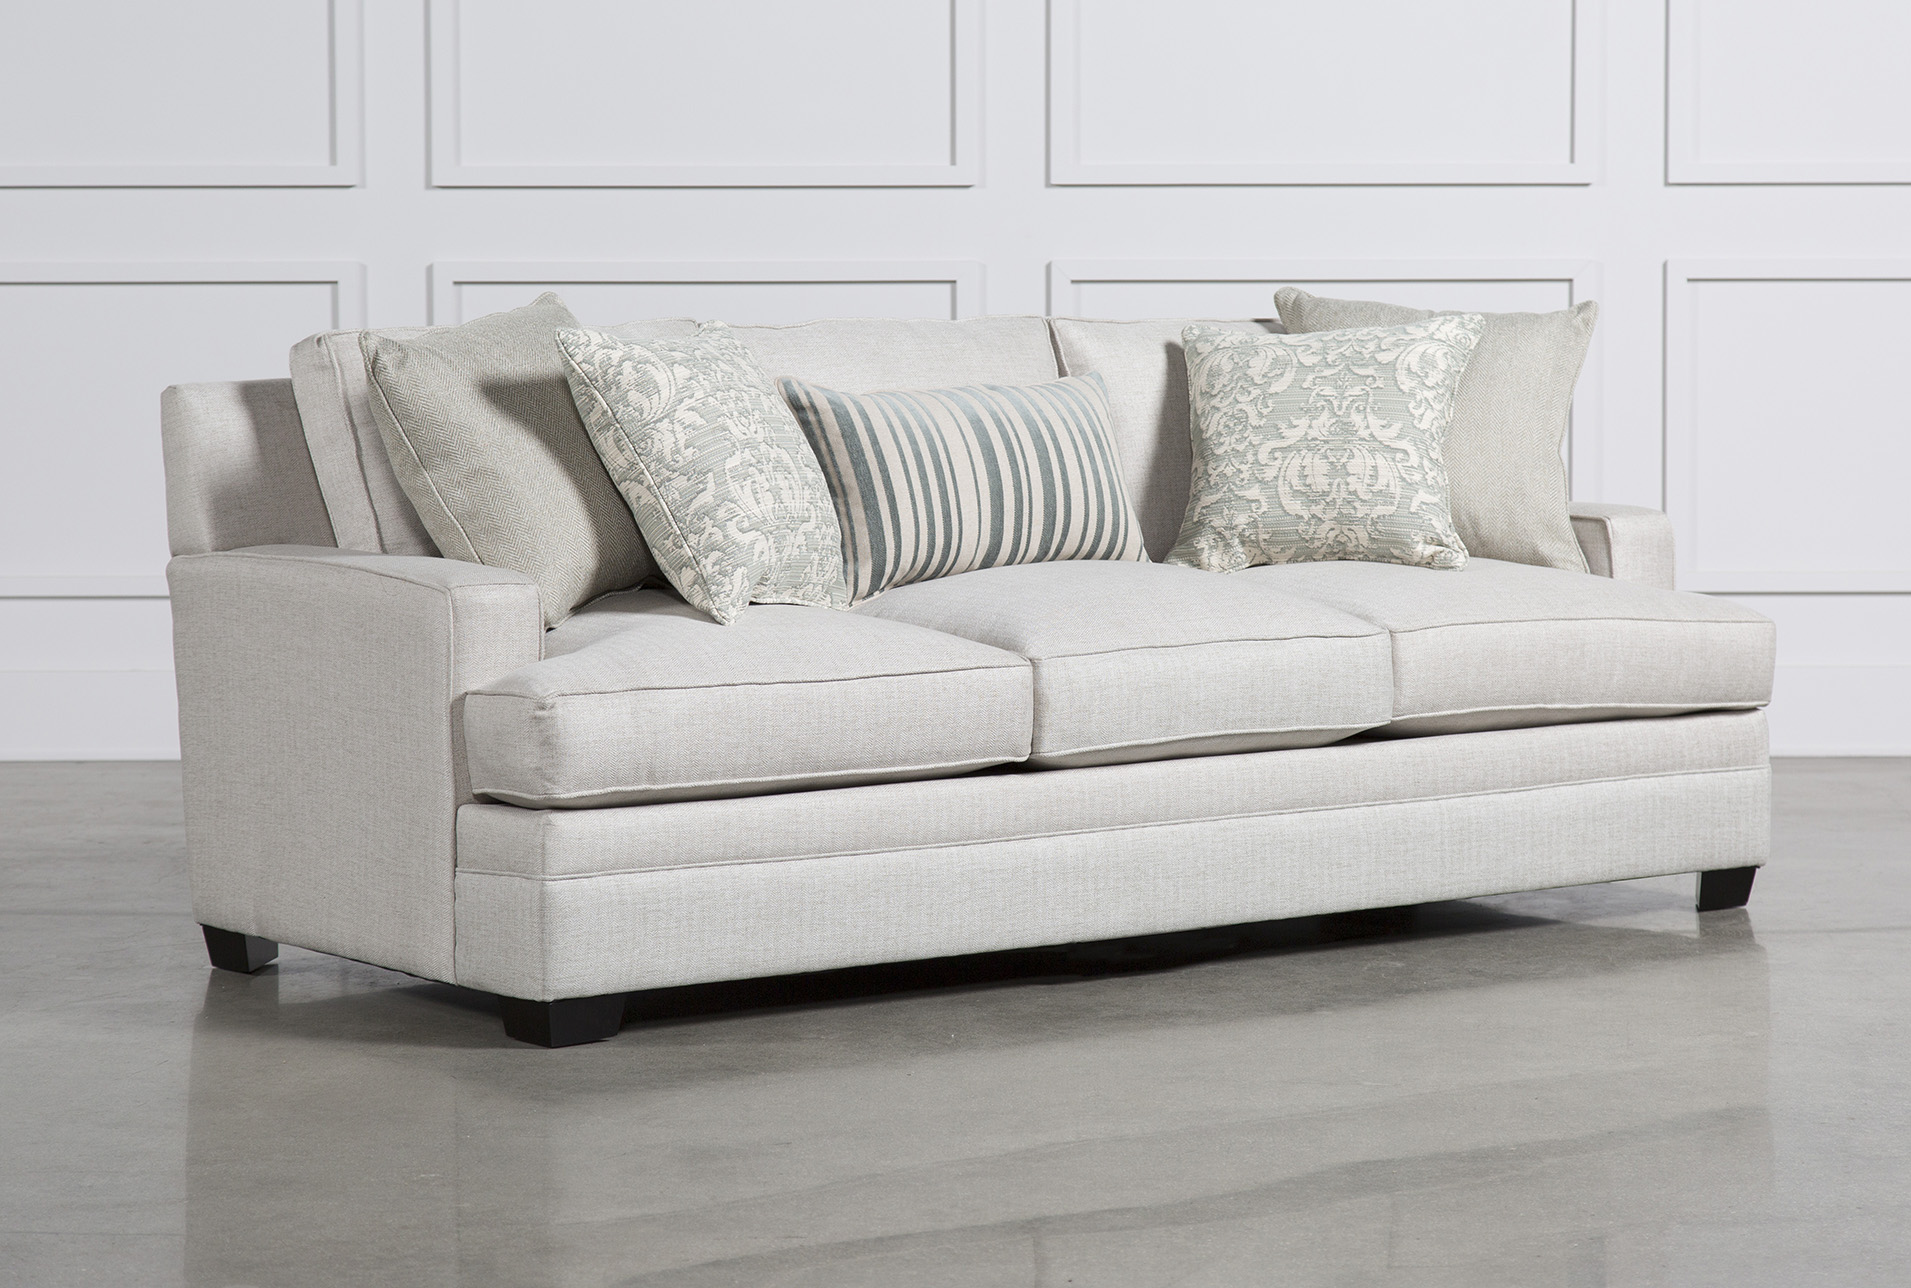 Charmant Leslie Sofa (Qty: 1) Has Been Successfully Added To Your Cart.